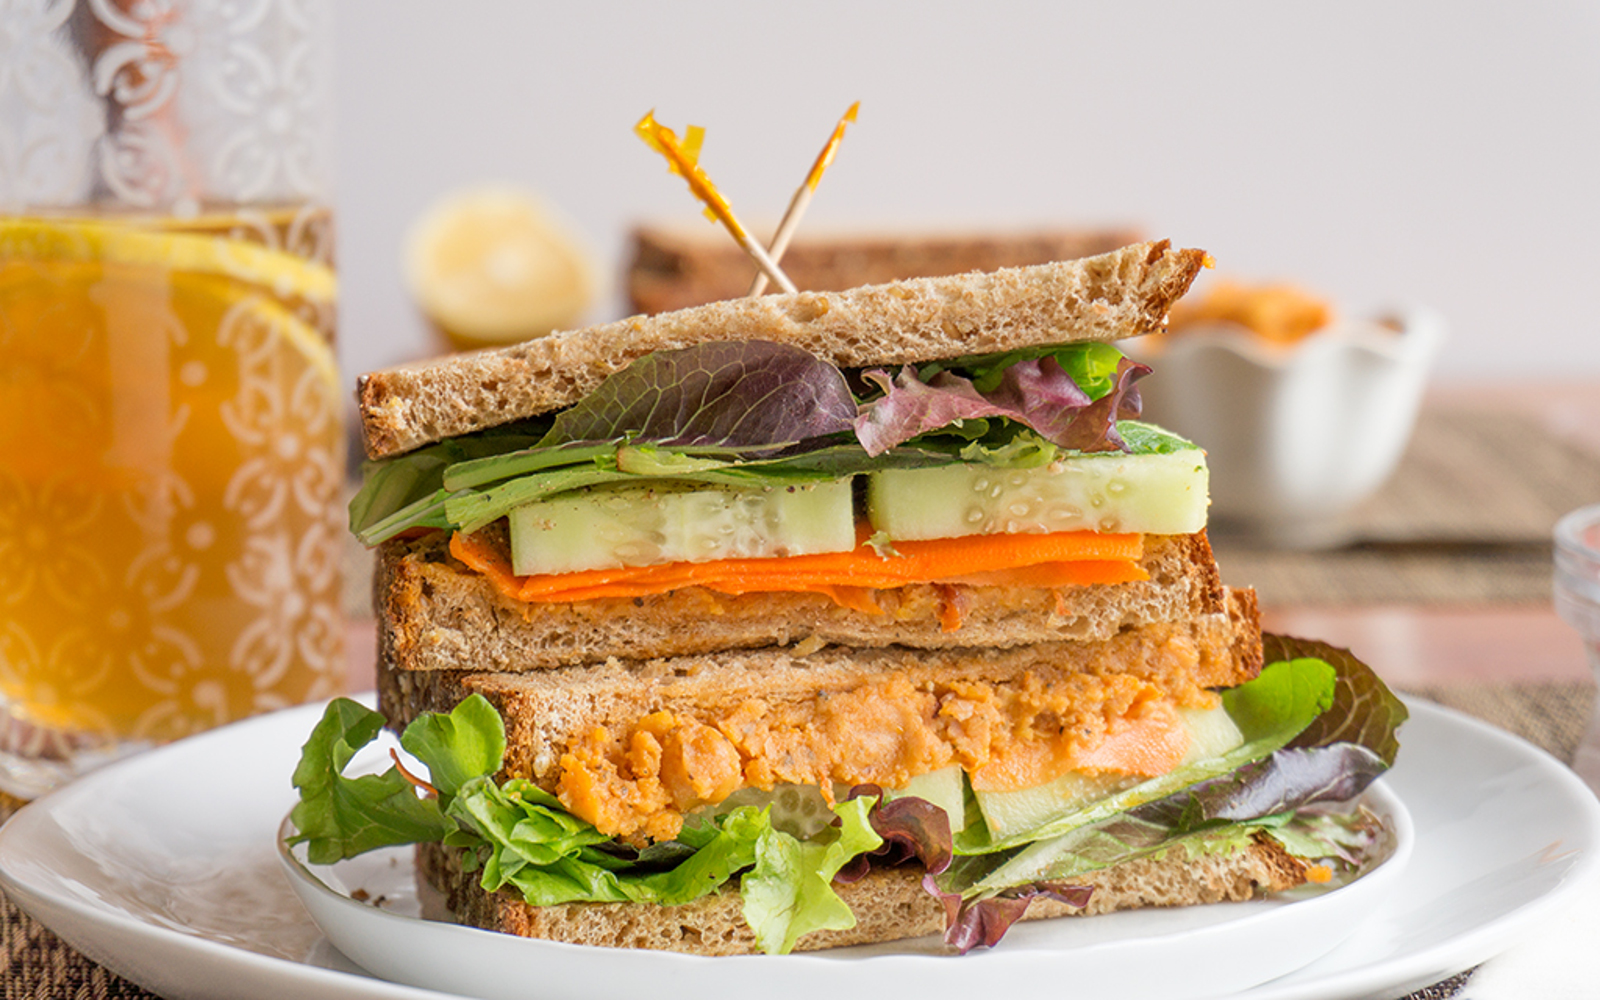 Spicy Roasted Chickpea Spread